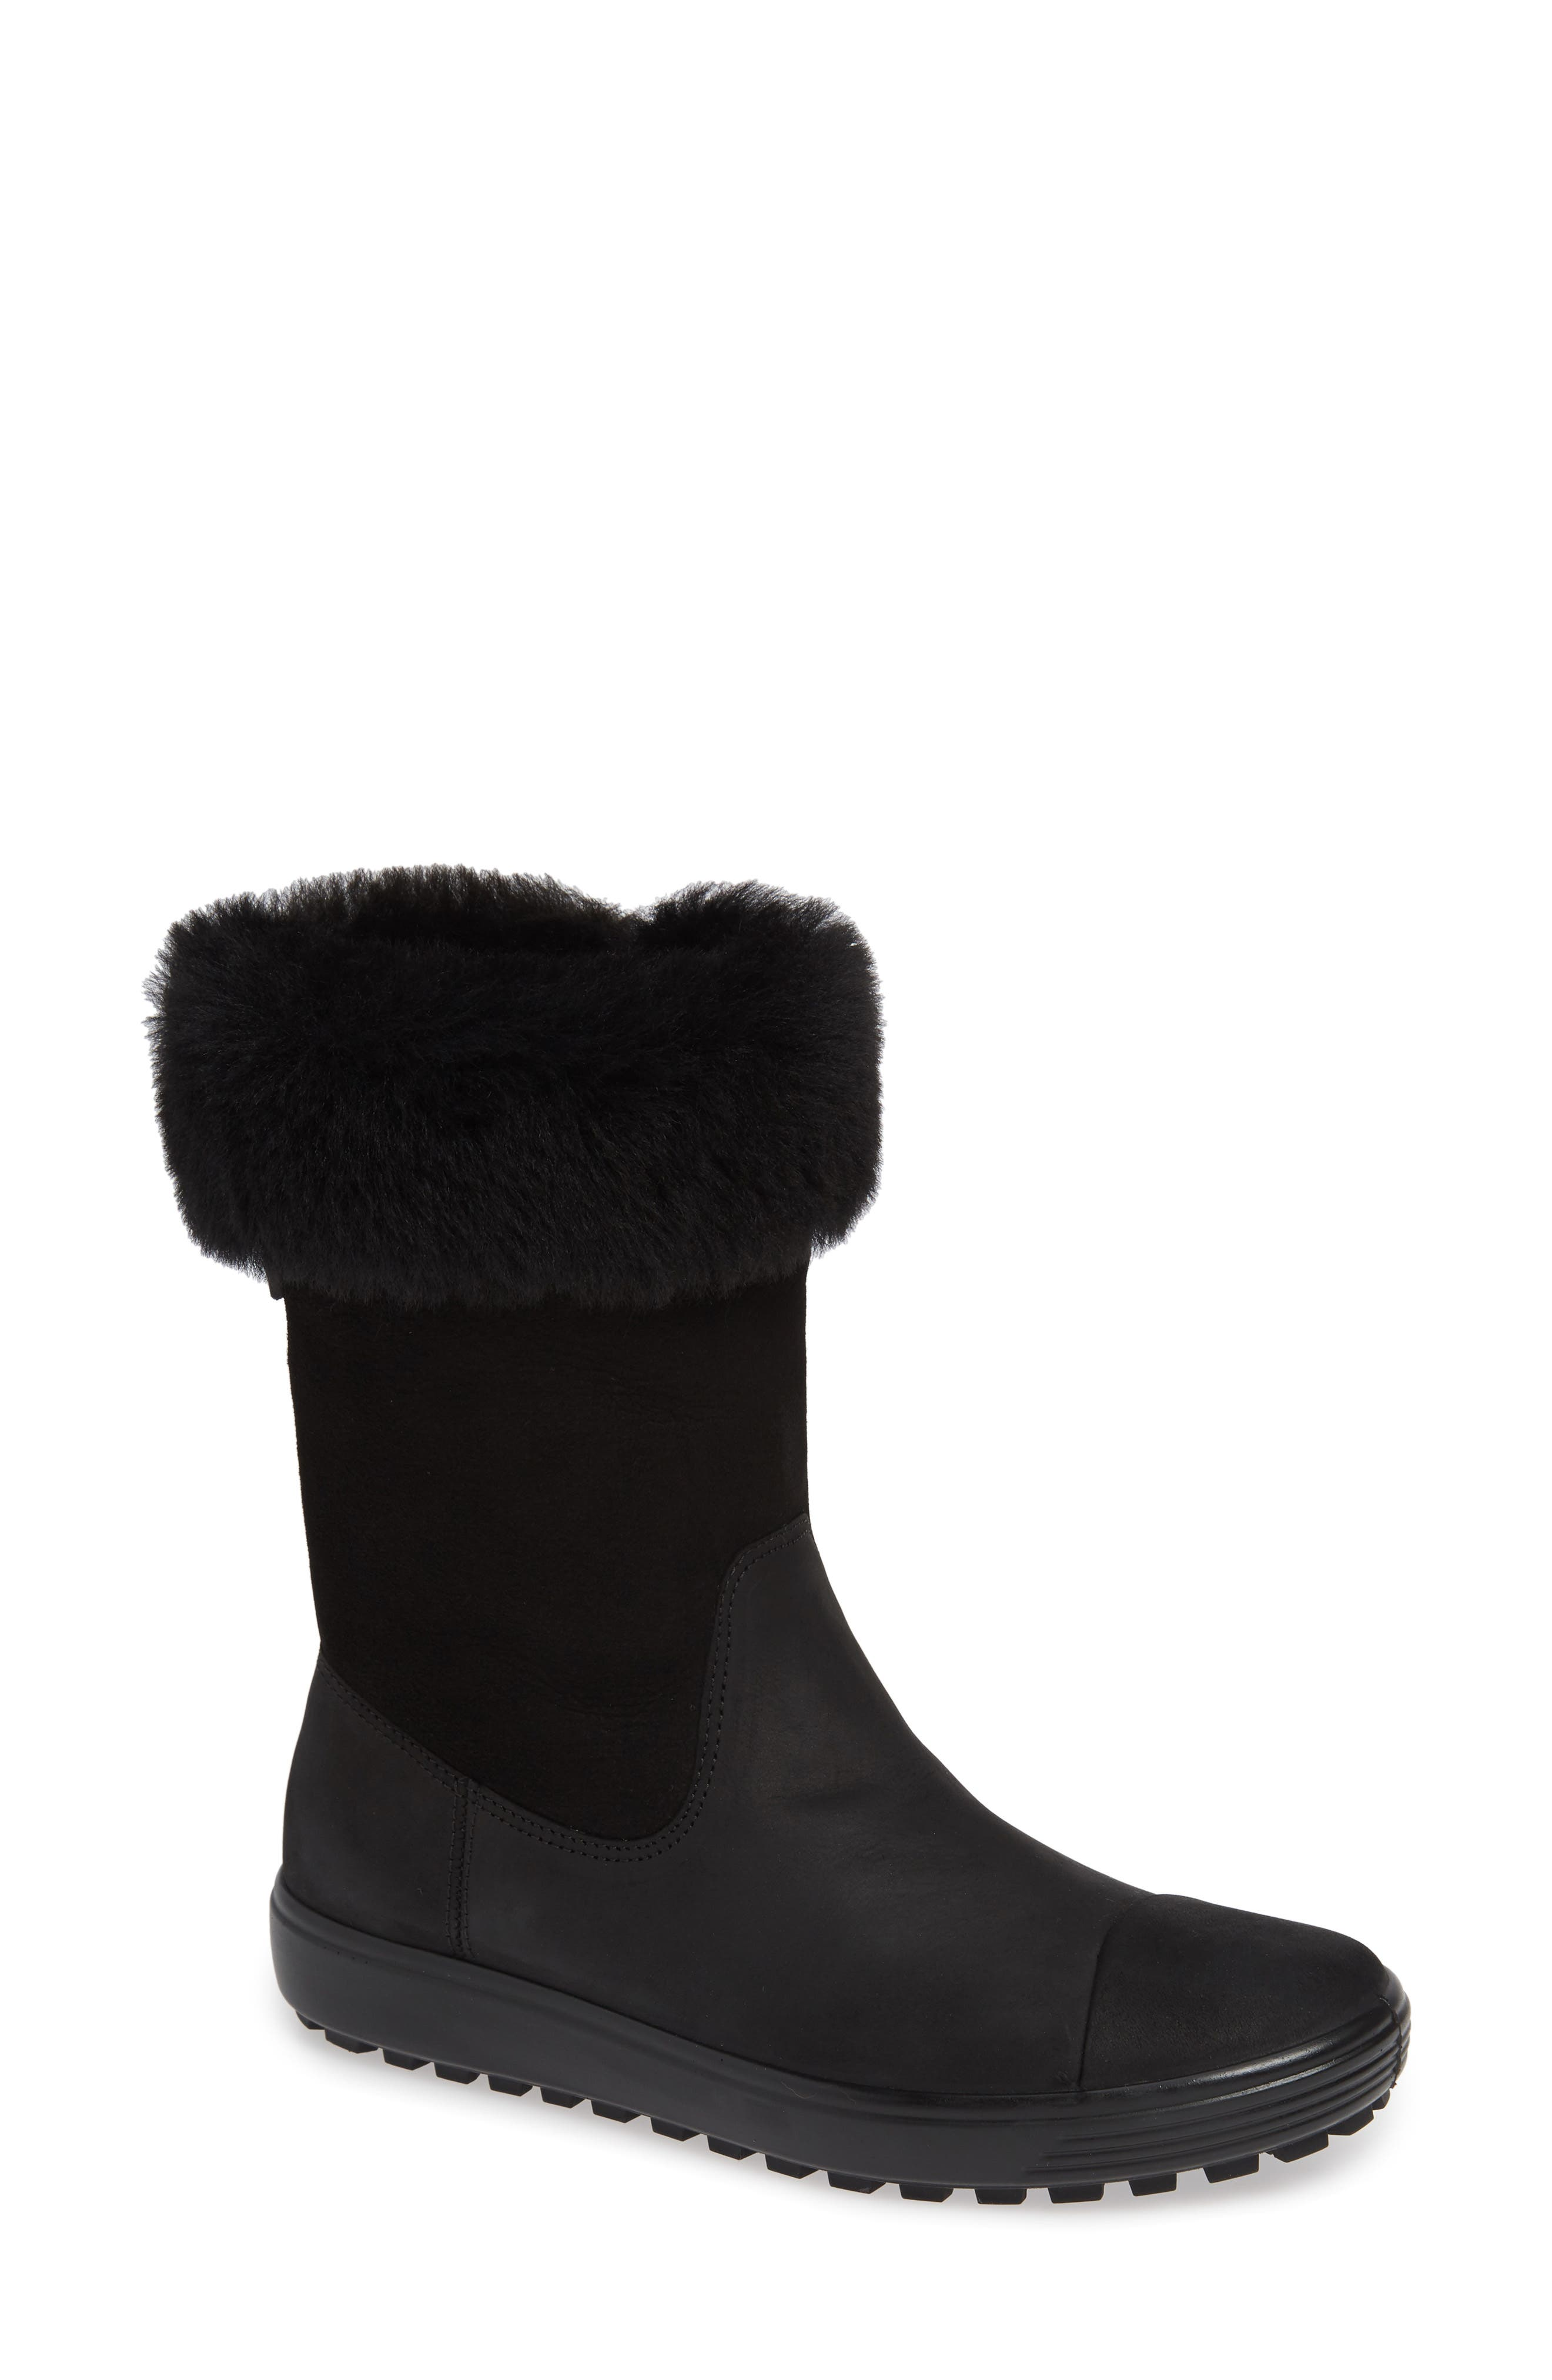 Soft 7 Tred Waterproof Genuine Shearling Lined Boot,                             Main thumbnail 1, color,                             BLACK NUBUCK LEATHER